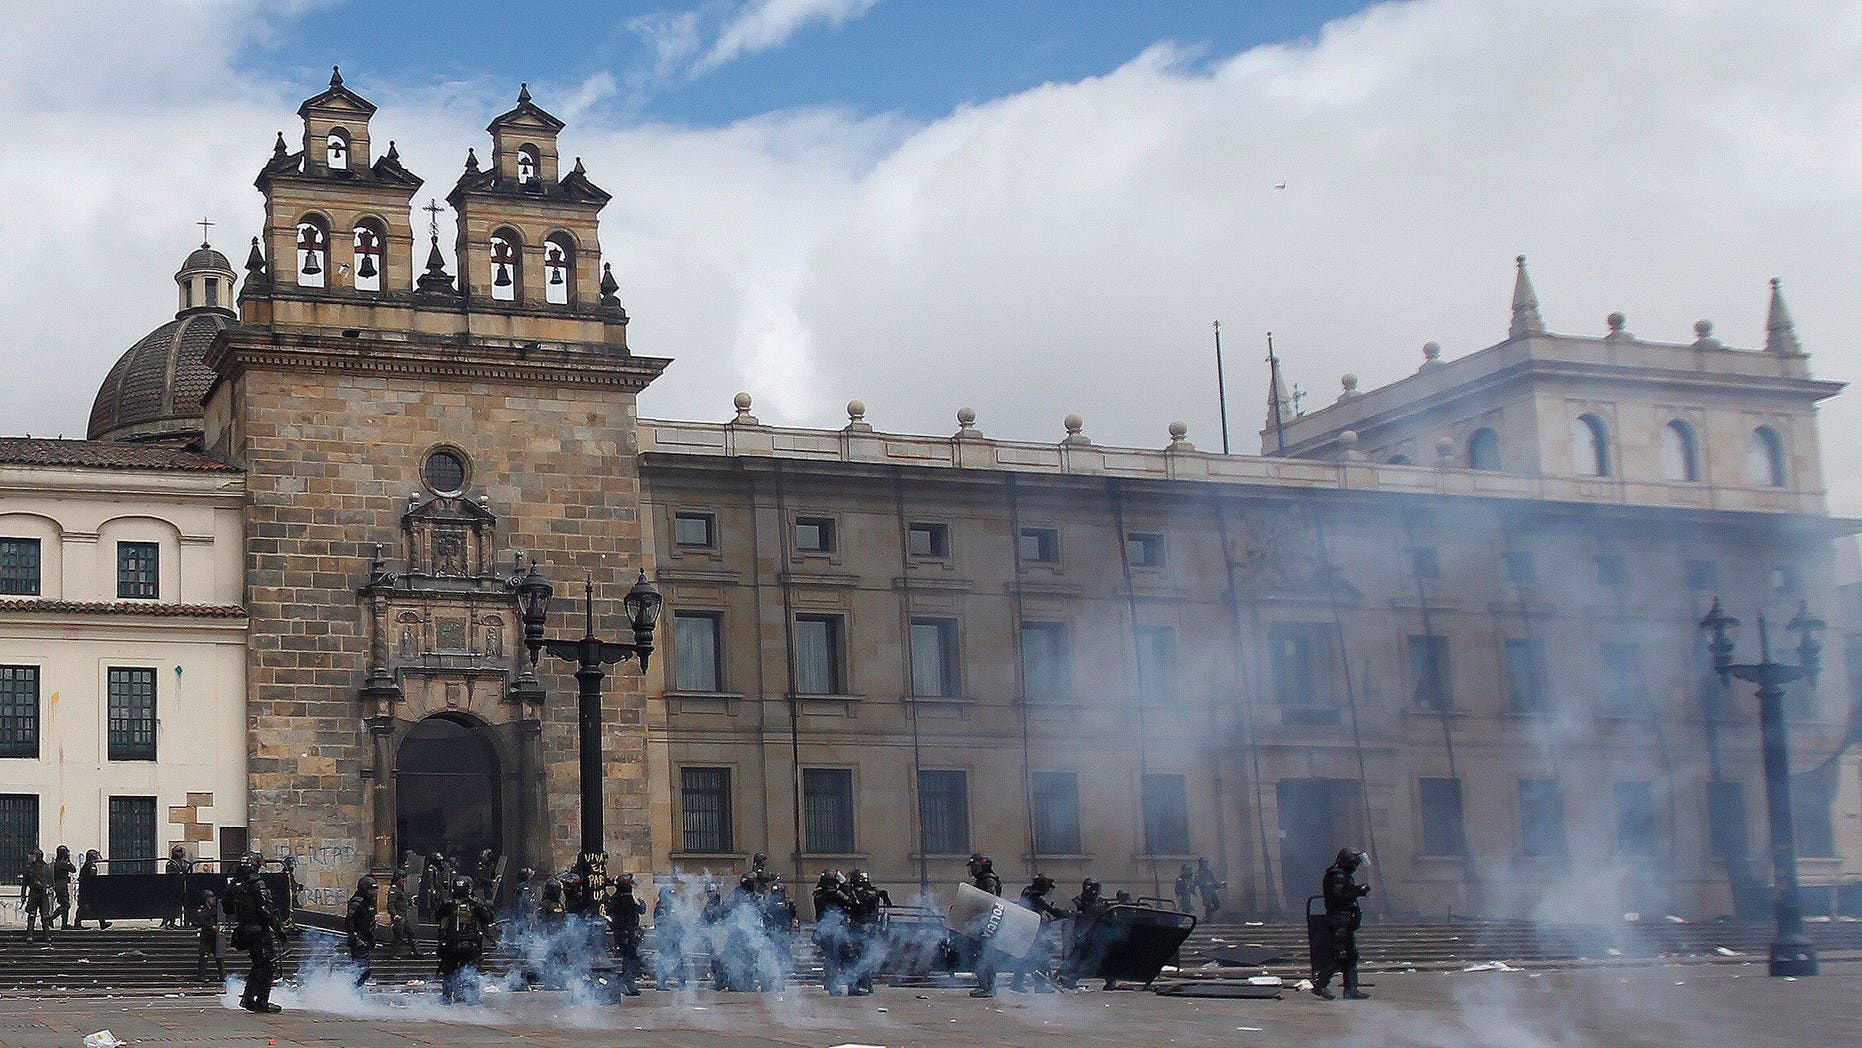 Riot police stand in the capital's main square during clashing with students in downtown Bogota, Colombia, Thursday, Aug. 29, 2013.